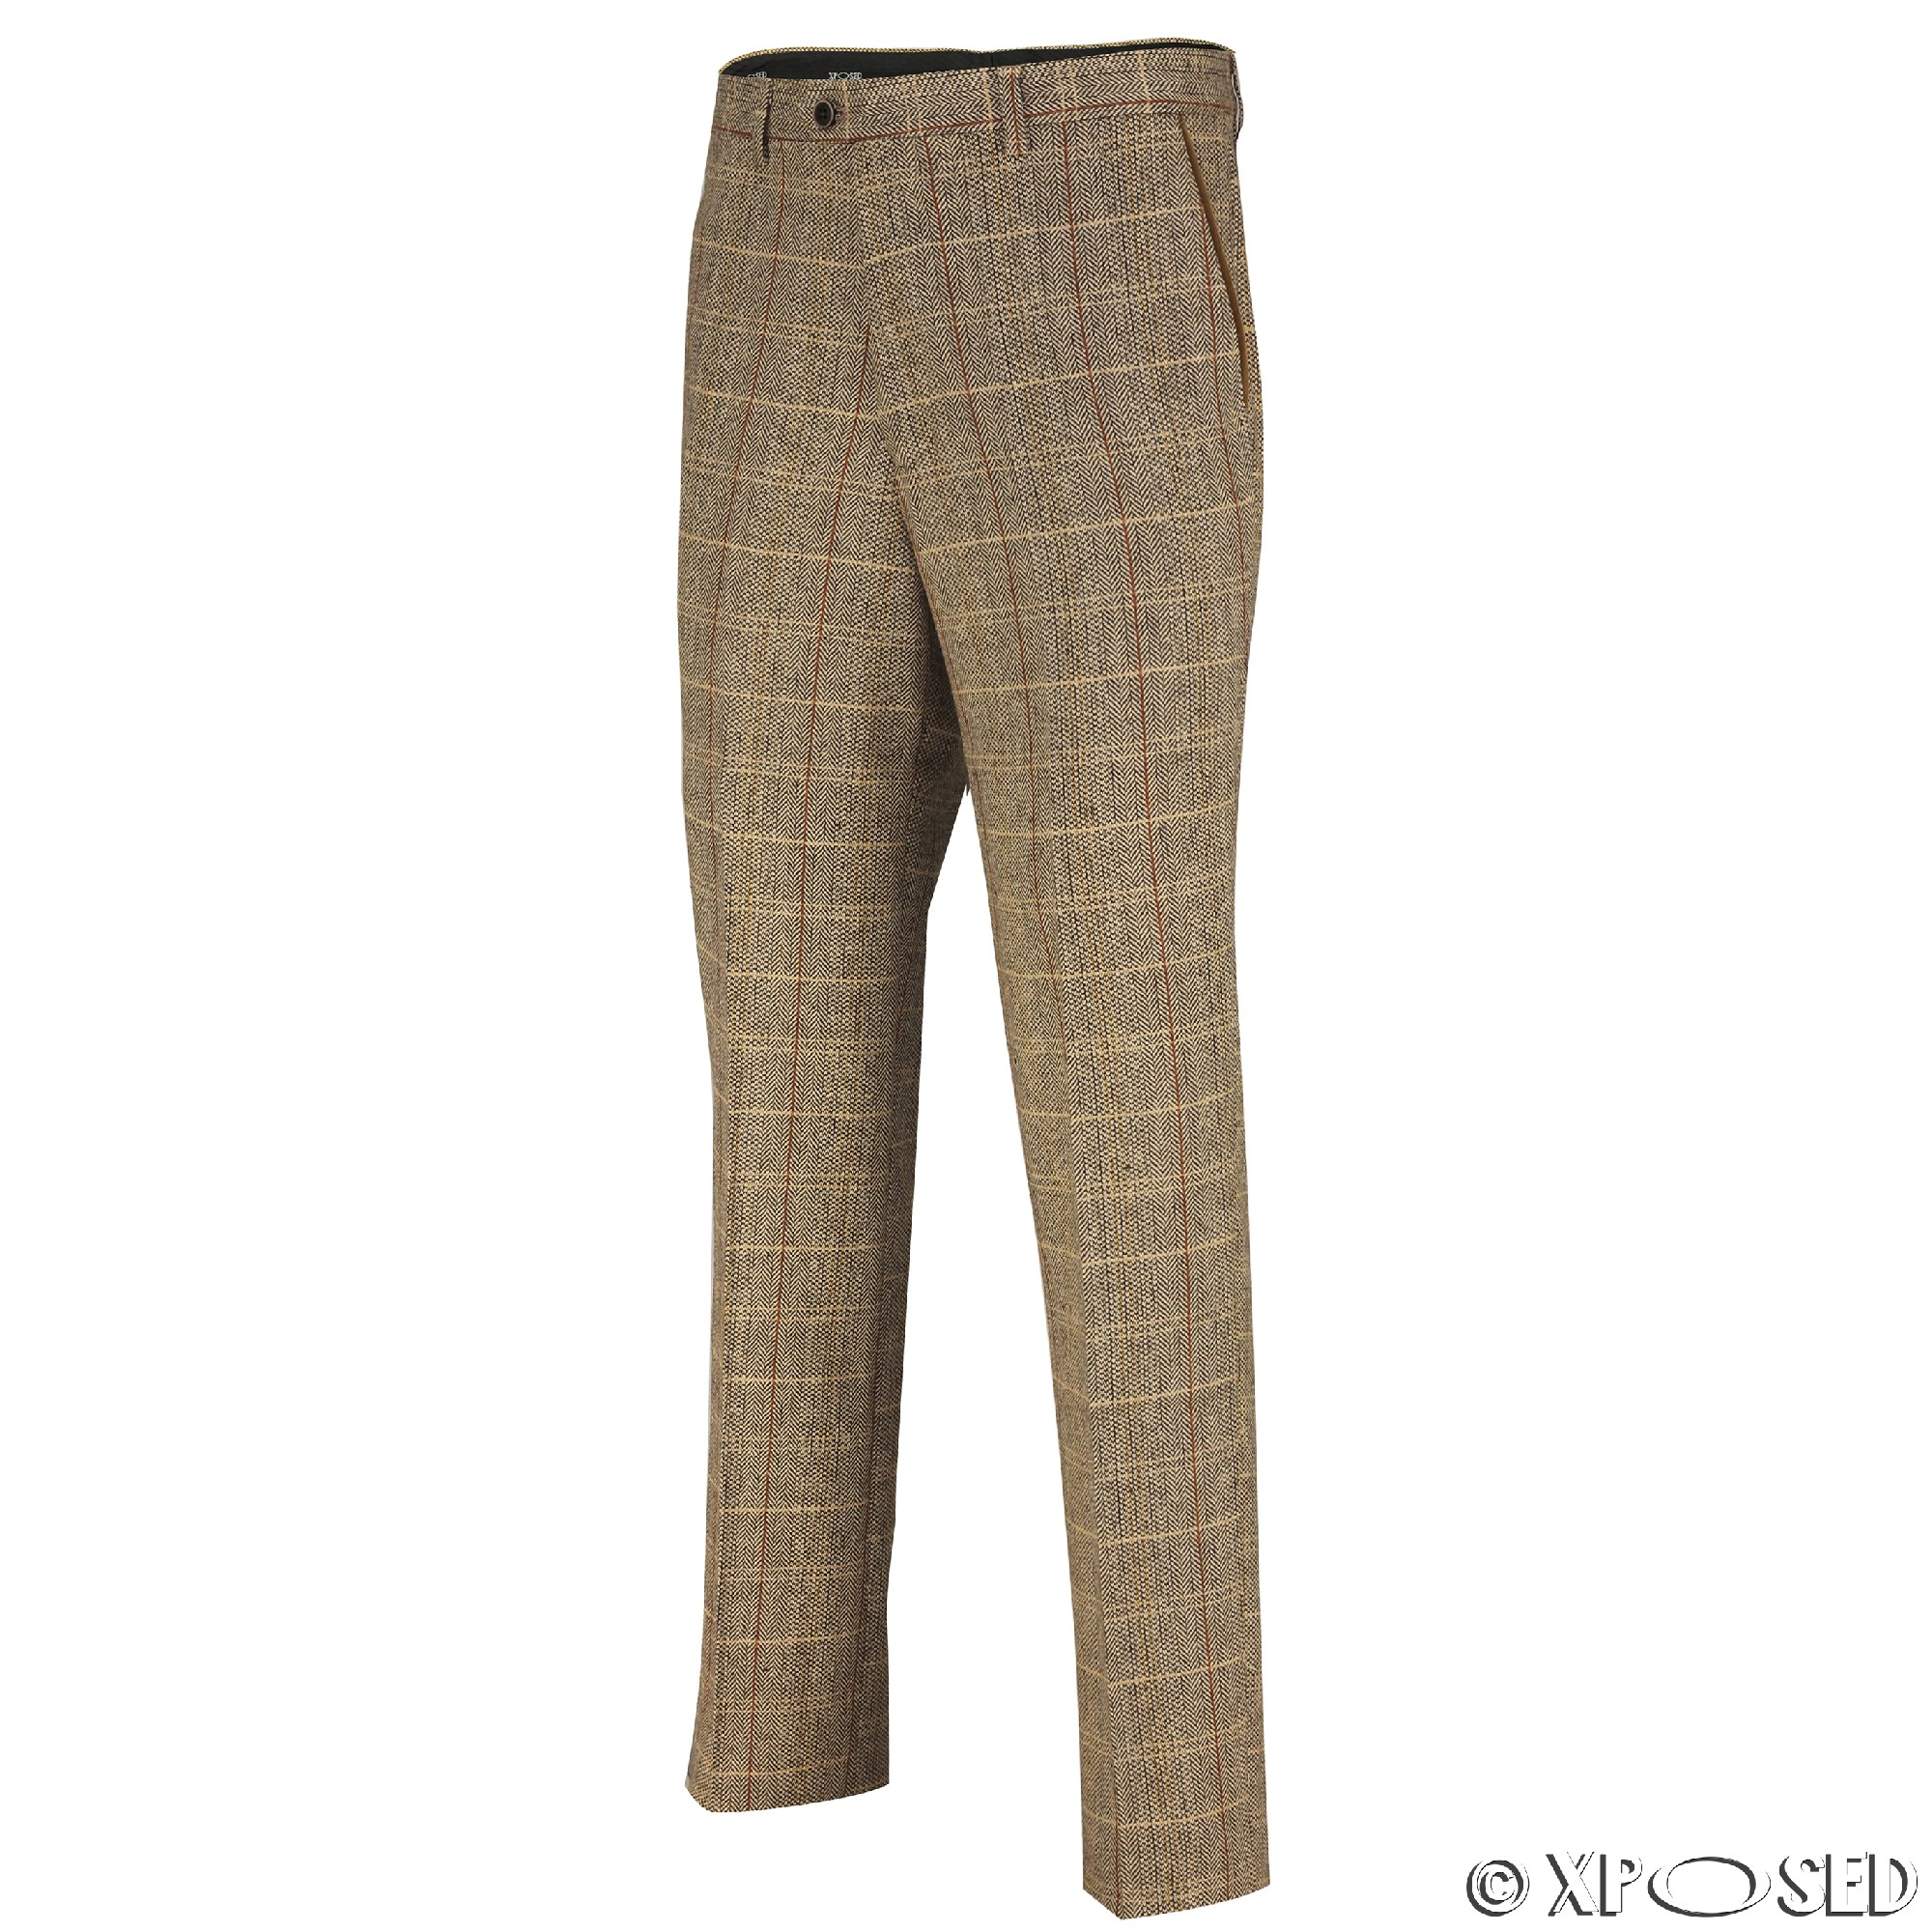 Mens Grey Dress Pants With Brown Shoes